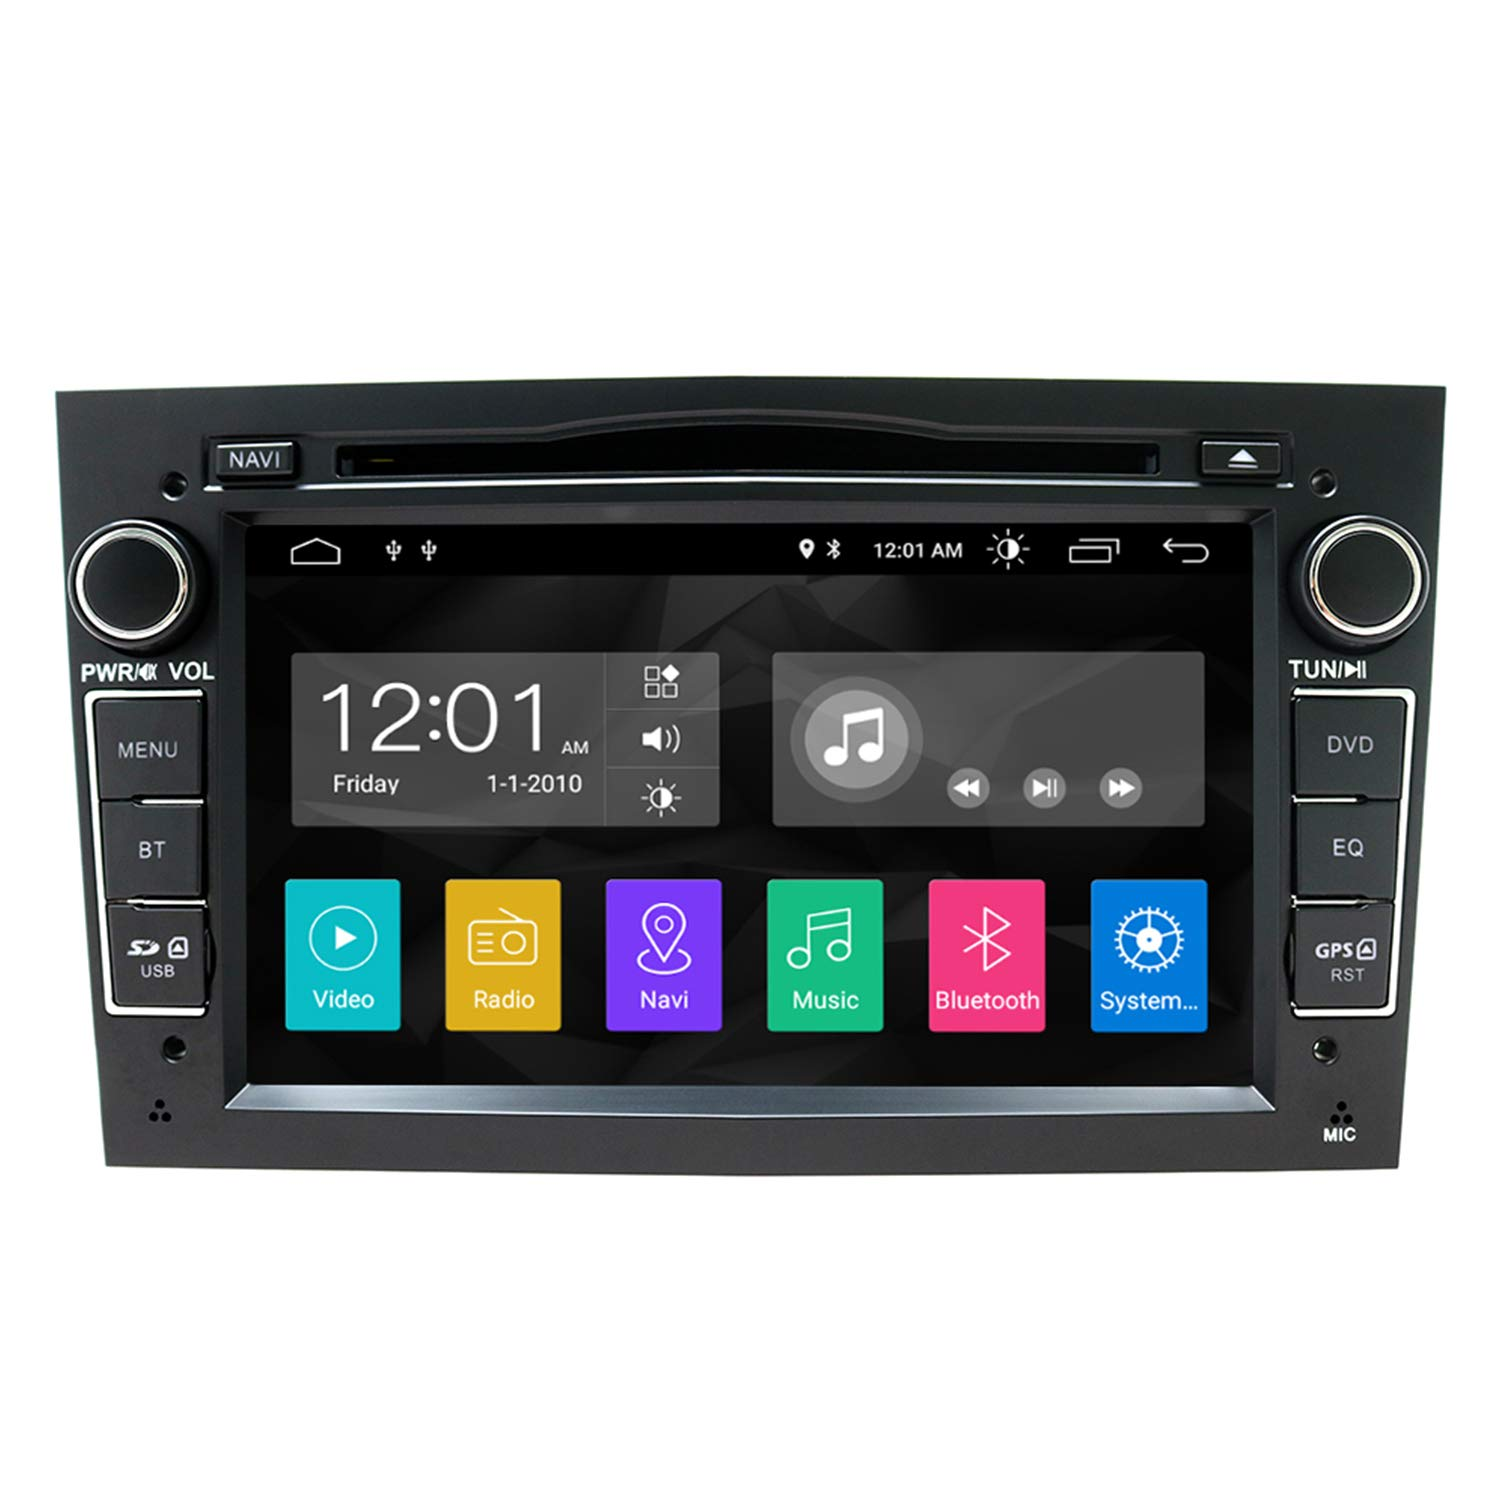 SWTNVIN Android 10.0 Car Audio Stereo Headunit Fits for Opel Vauxhall DVD Player Radio 7 Inch IPS HD Touch Screen GPS Navigation with Bluetooth WIFI Steering Wheel Control 2GB+16GB (Black)